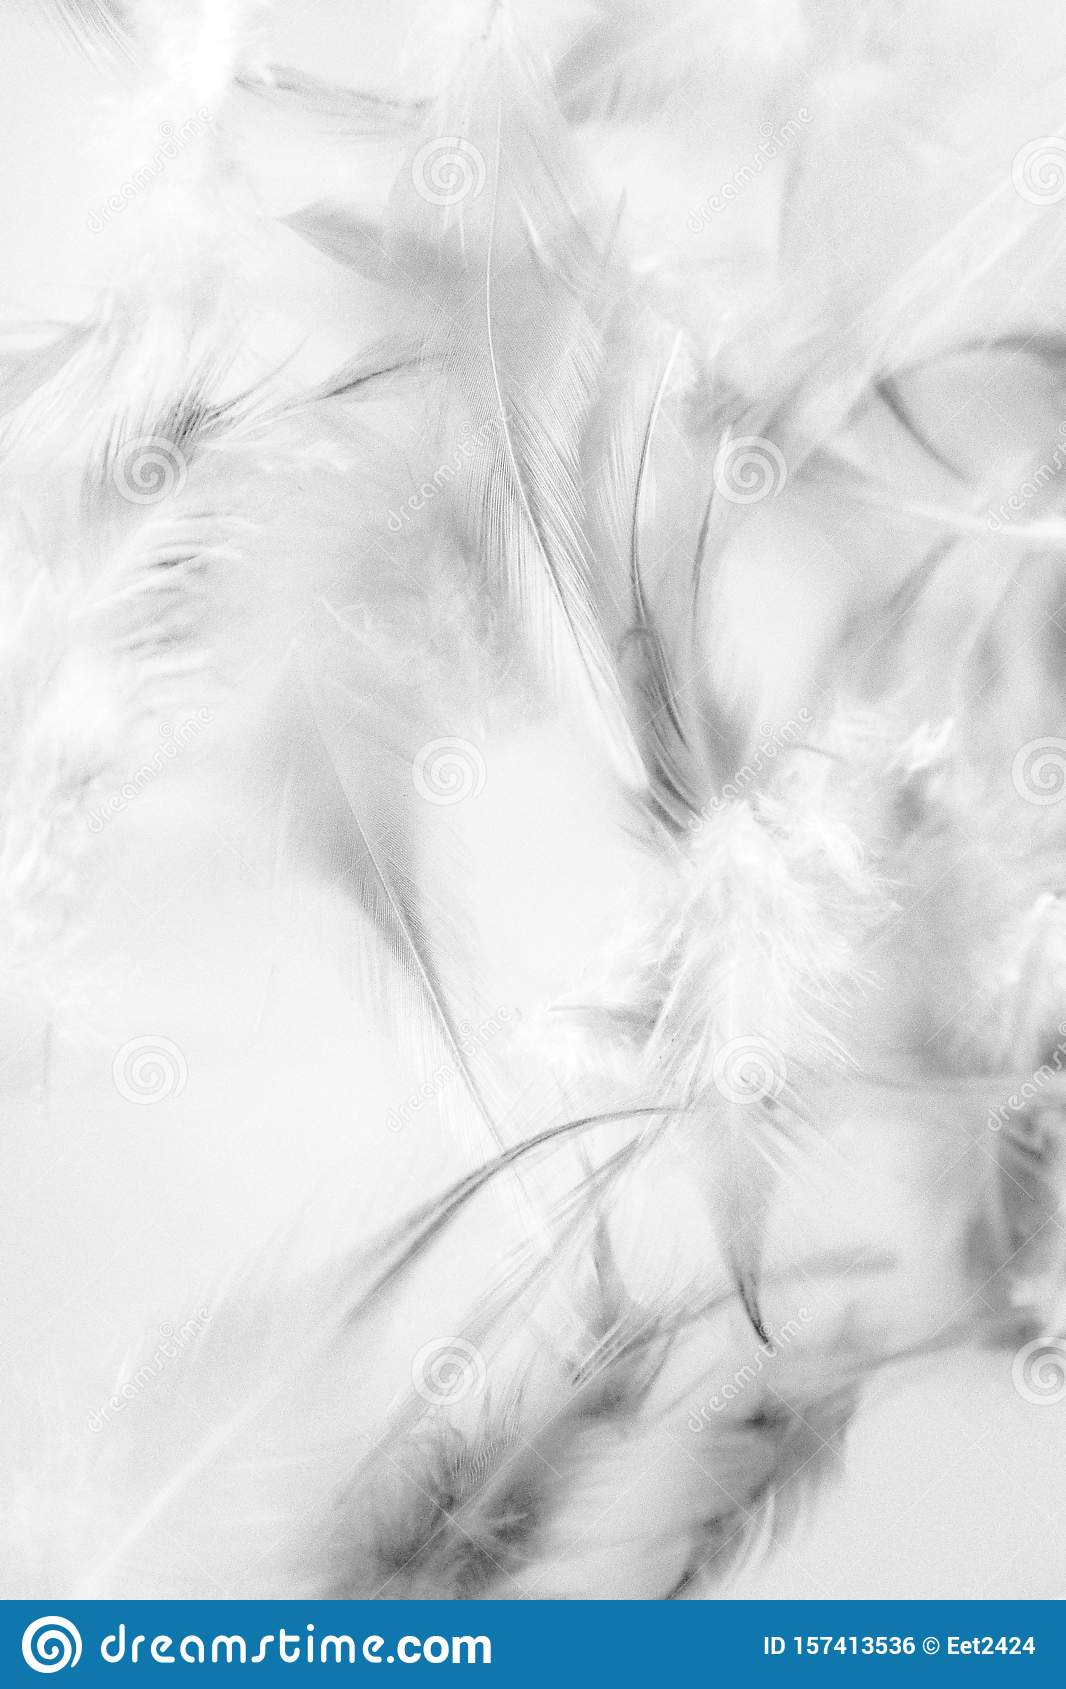 Beautiful Abstract Close Up Color Black And White Feathers Background And Wallpaper Stock Photo Image Of Dark Macro 157413536